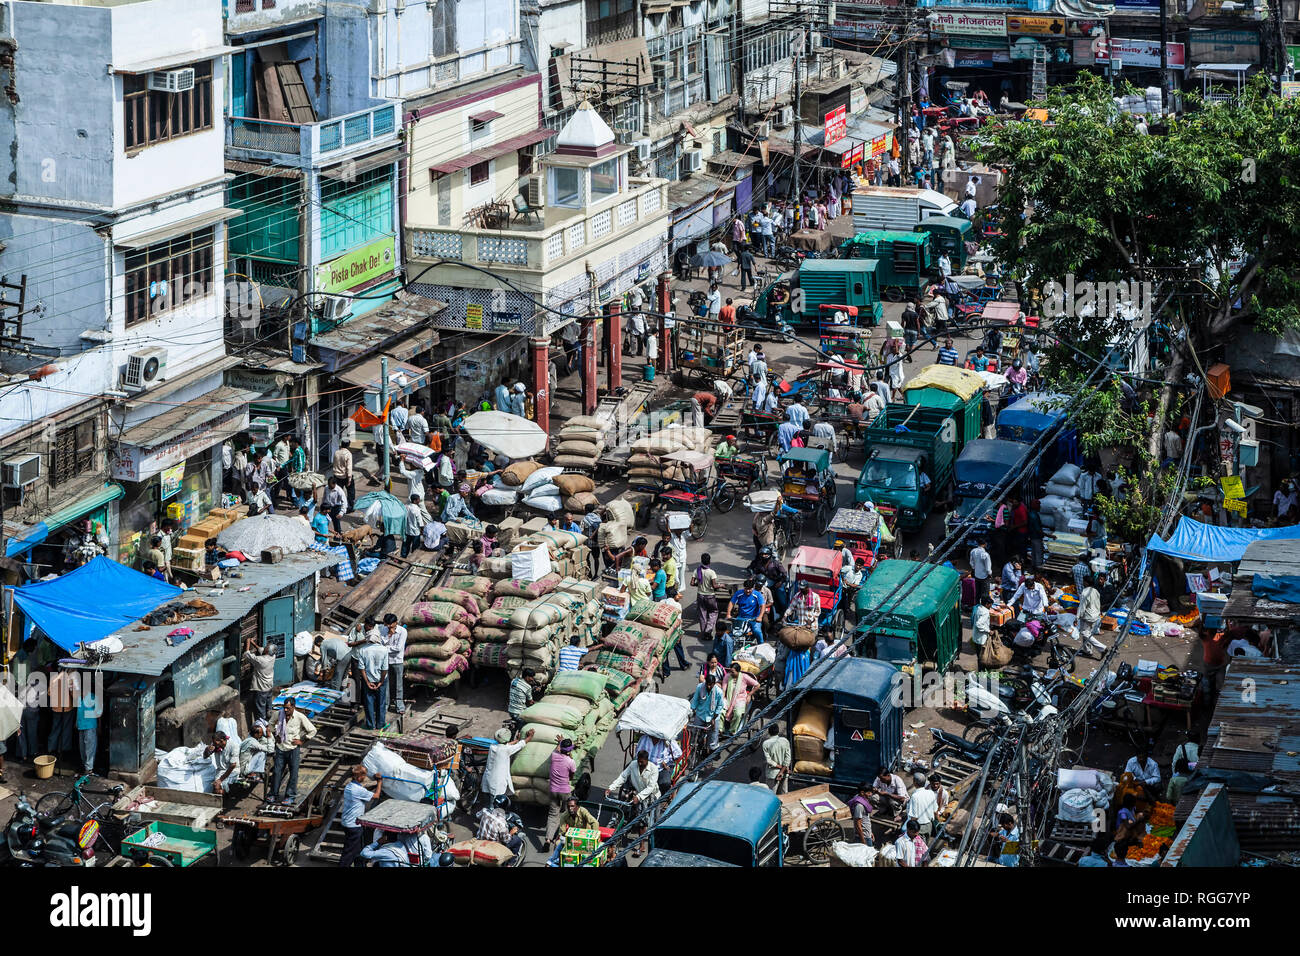 Busy street, Old Delhi, India - Stock Image